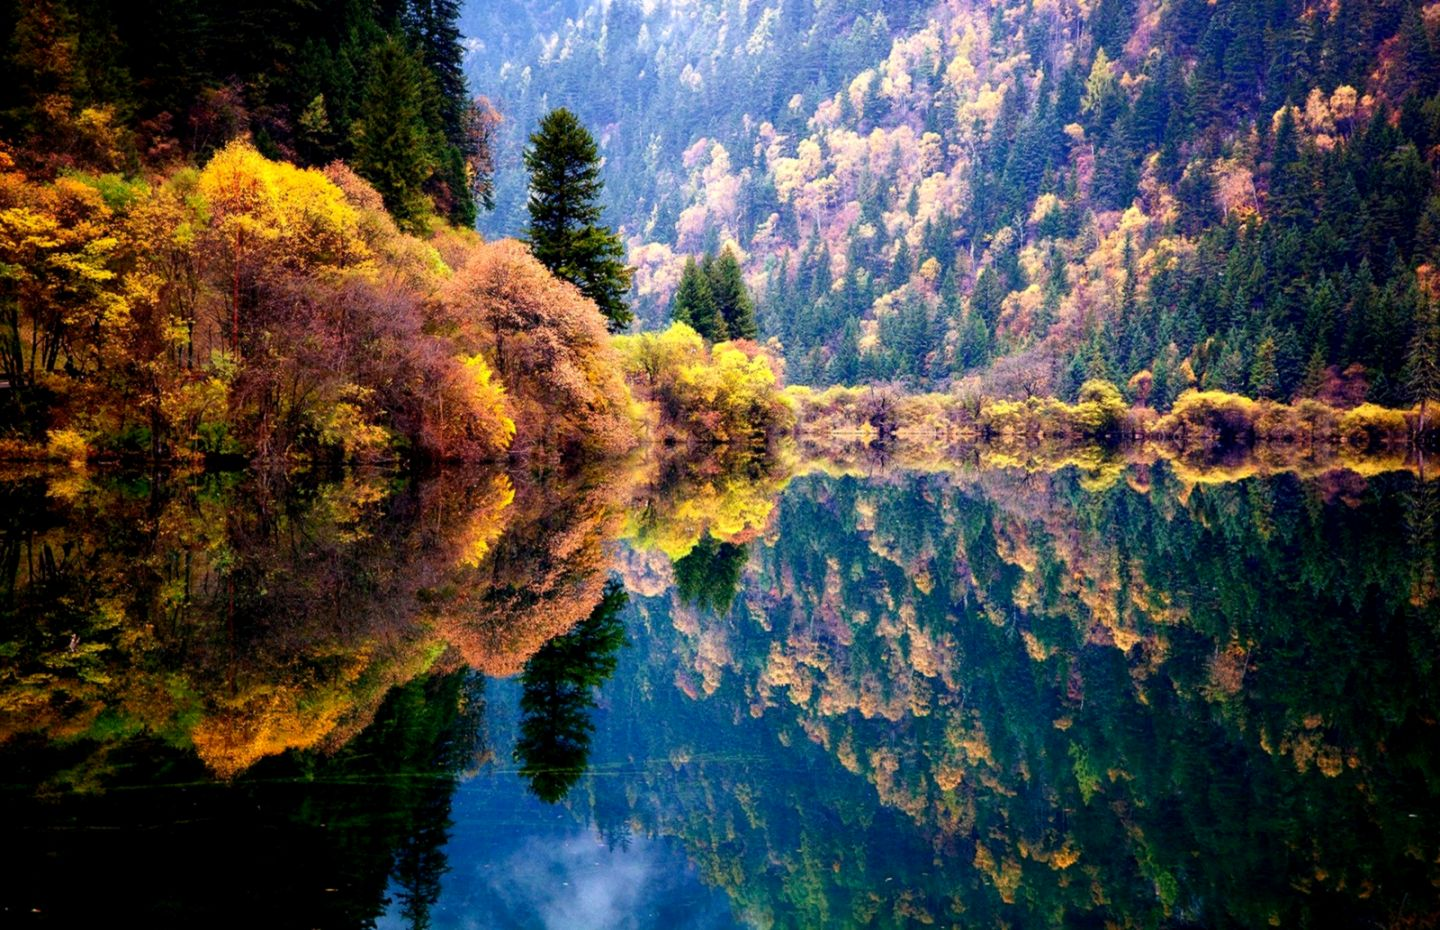 Nature Mountain Autumn Forest Lake Hd Wallpaper Wallpapers Pc